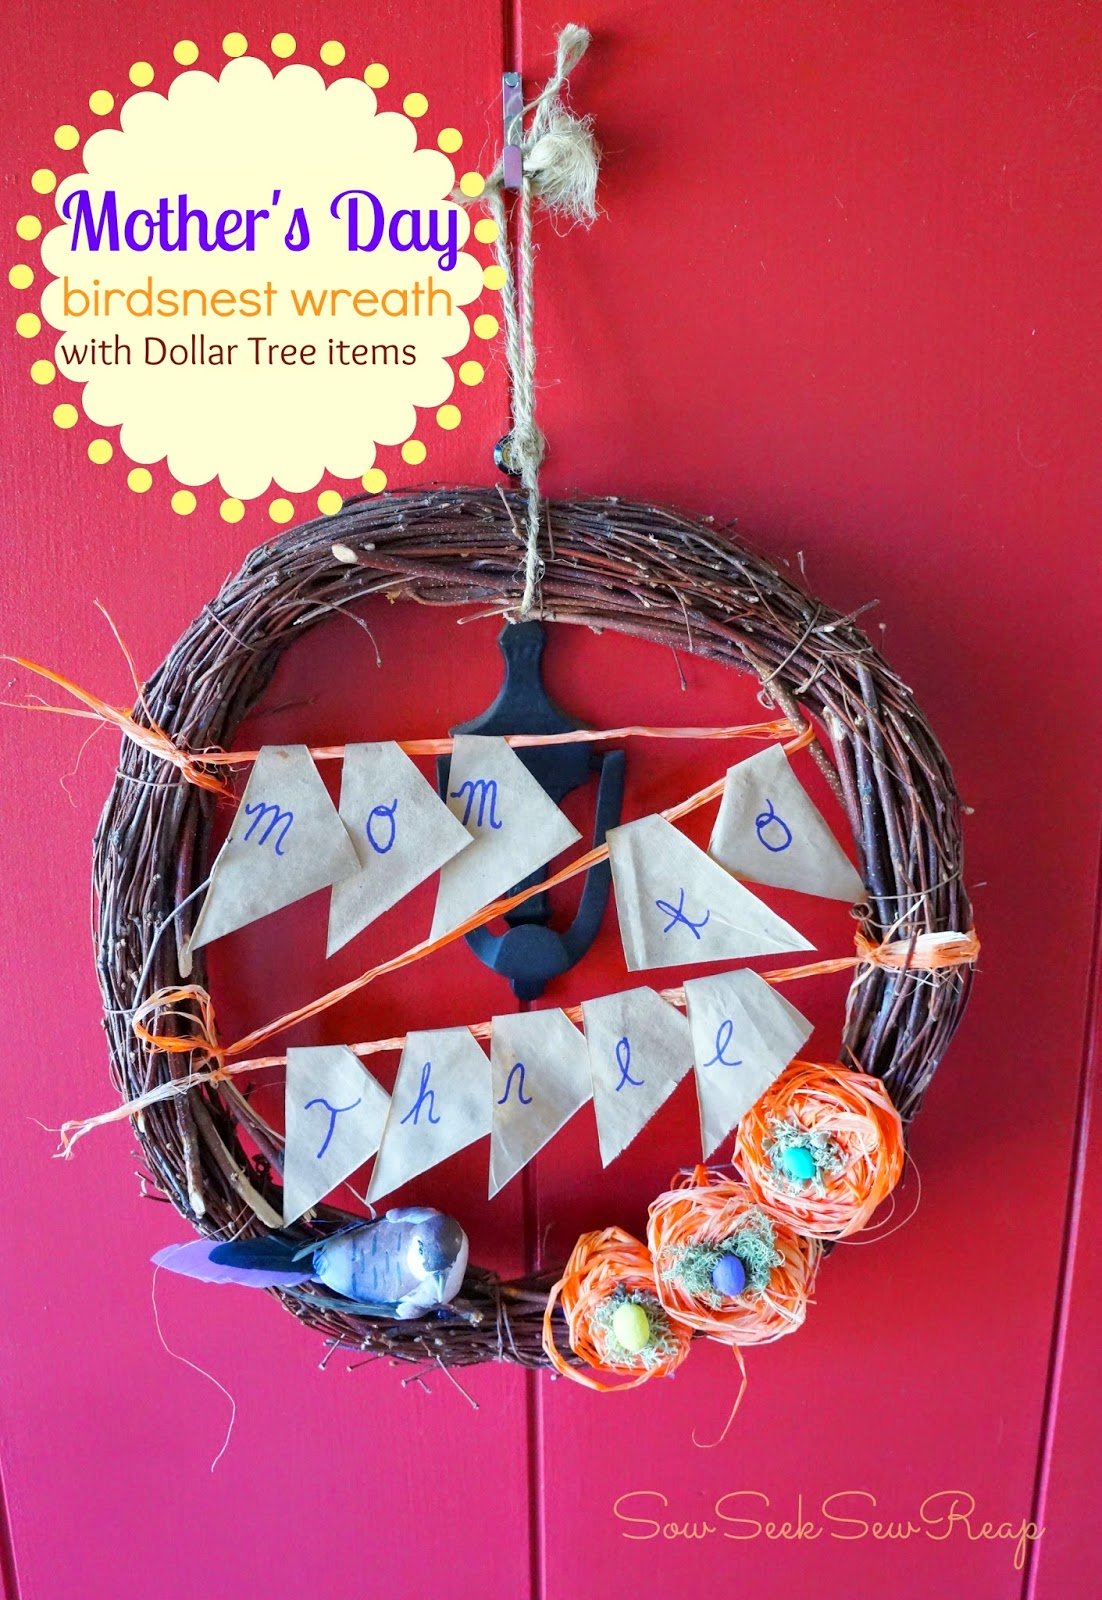 Mother's Day wreath, Dollar tree wreath, birdsnest wreath